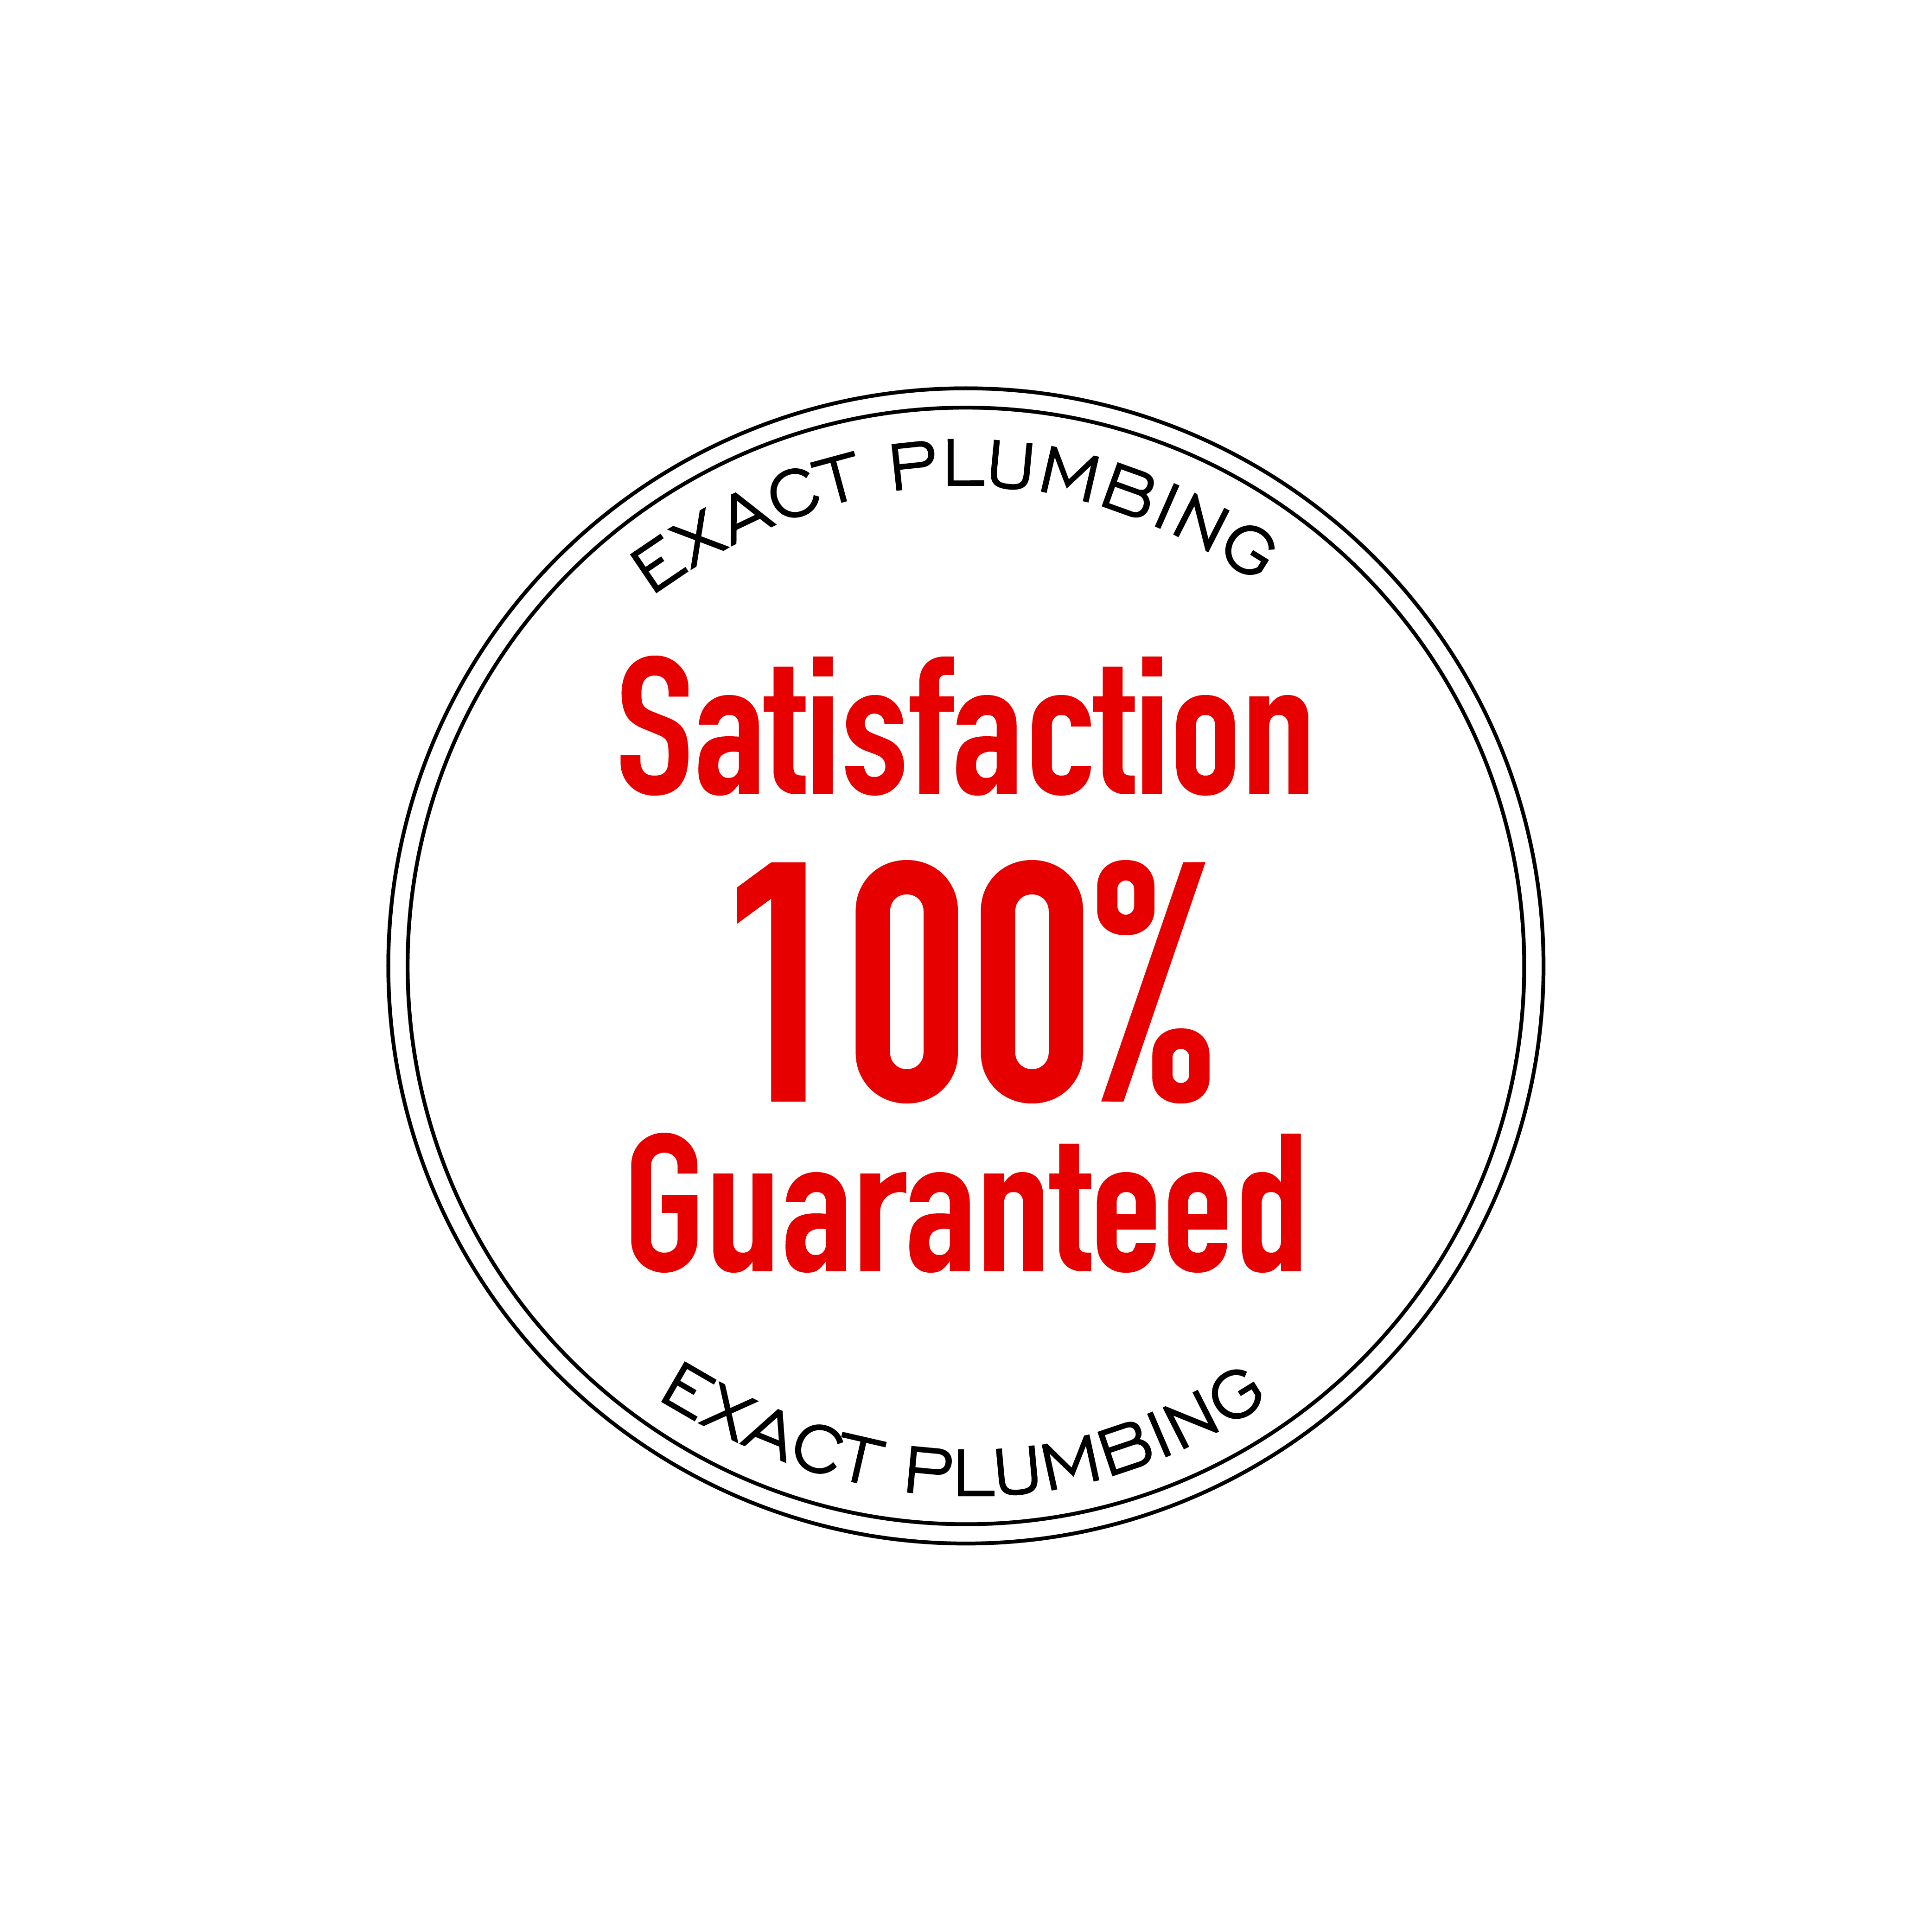 Exact Plumbing Eco Friendly Plumber